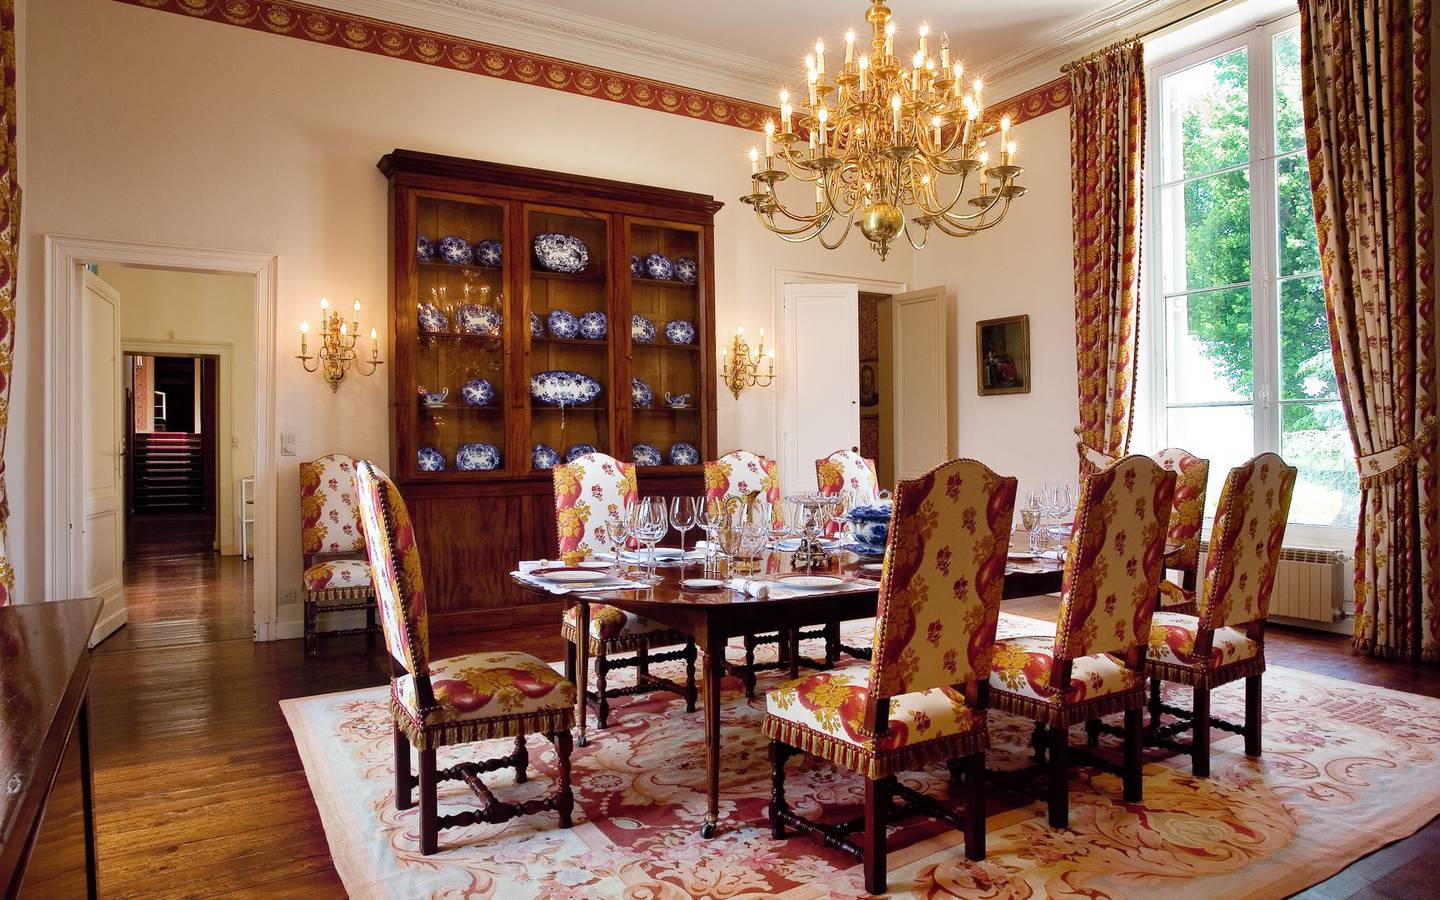 La Salle à Manger - Meeting room rental in Bordeaux Castles | Luxury ...